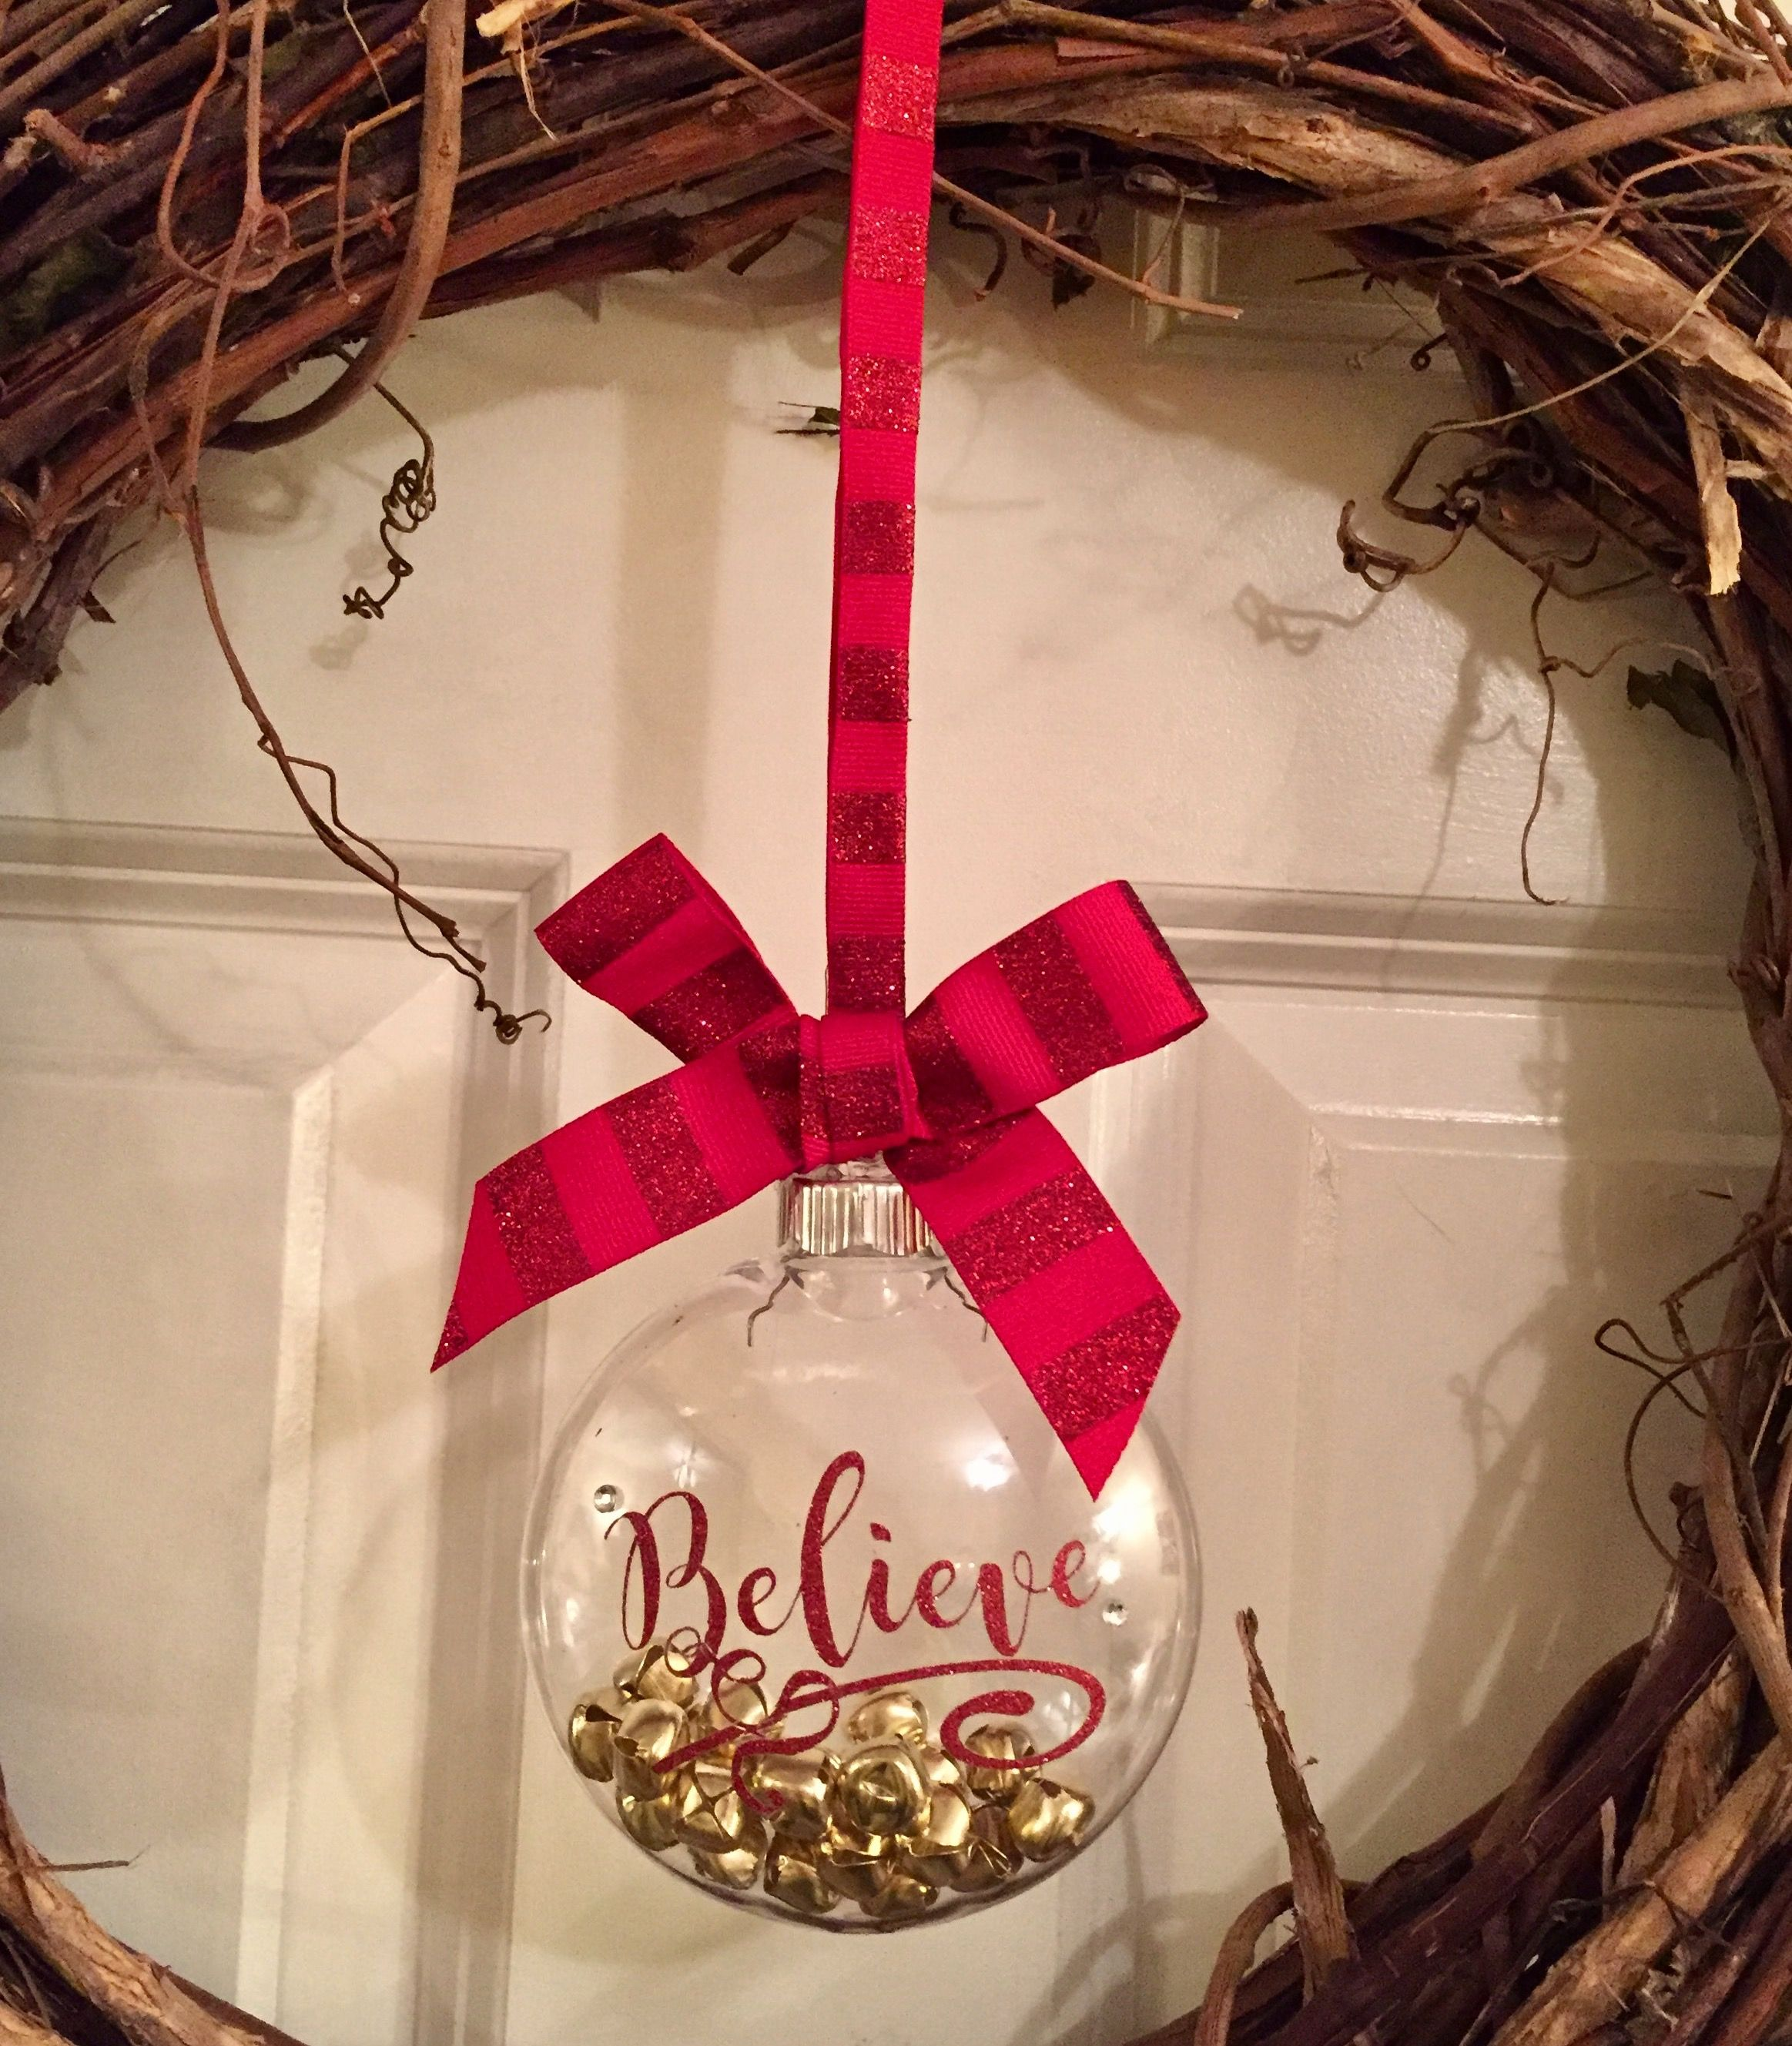 DIY Christmas ornament with Believe red glitter vinyl made